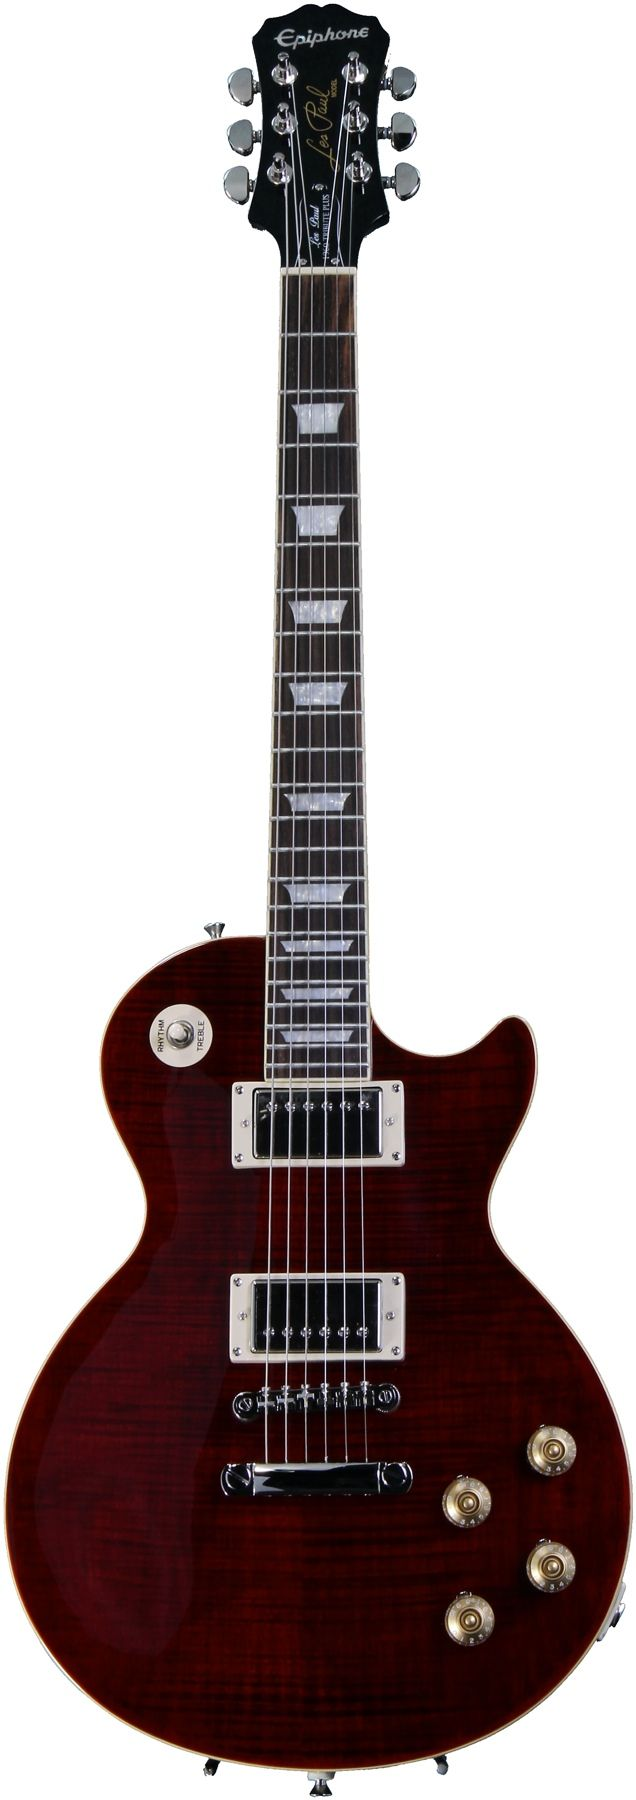 75 best epiphone lespaul tribute plus images by hilman badar on epiphone les paul tribute plus black cherry have this in blue asfbconference2016 Images